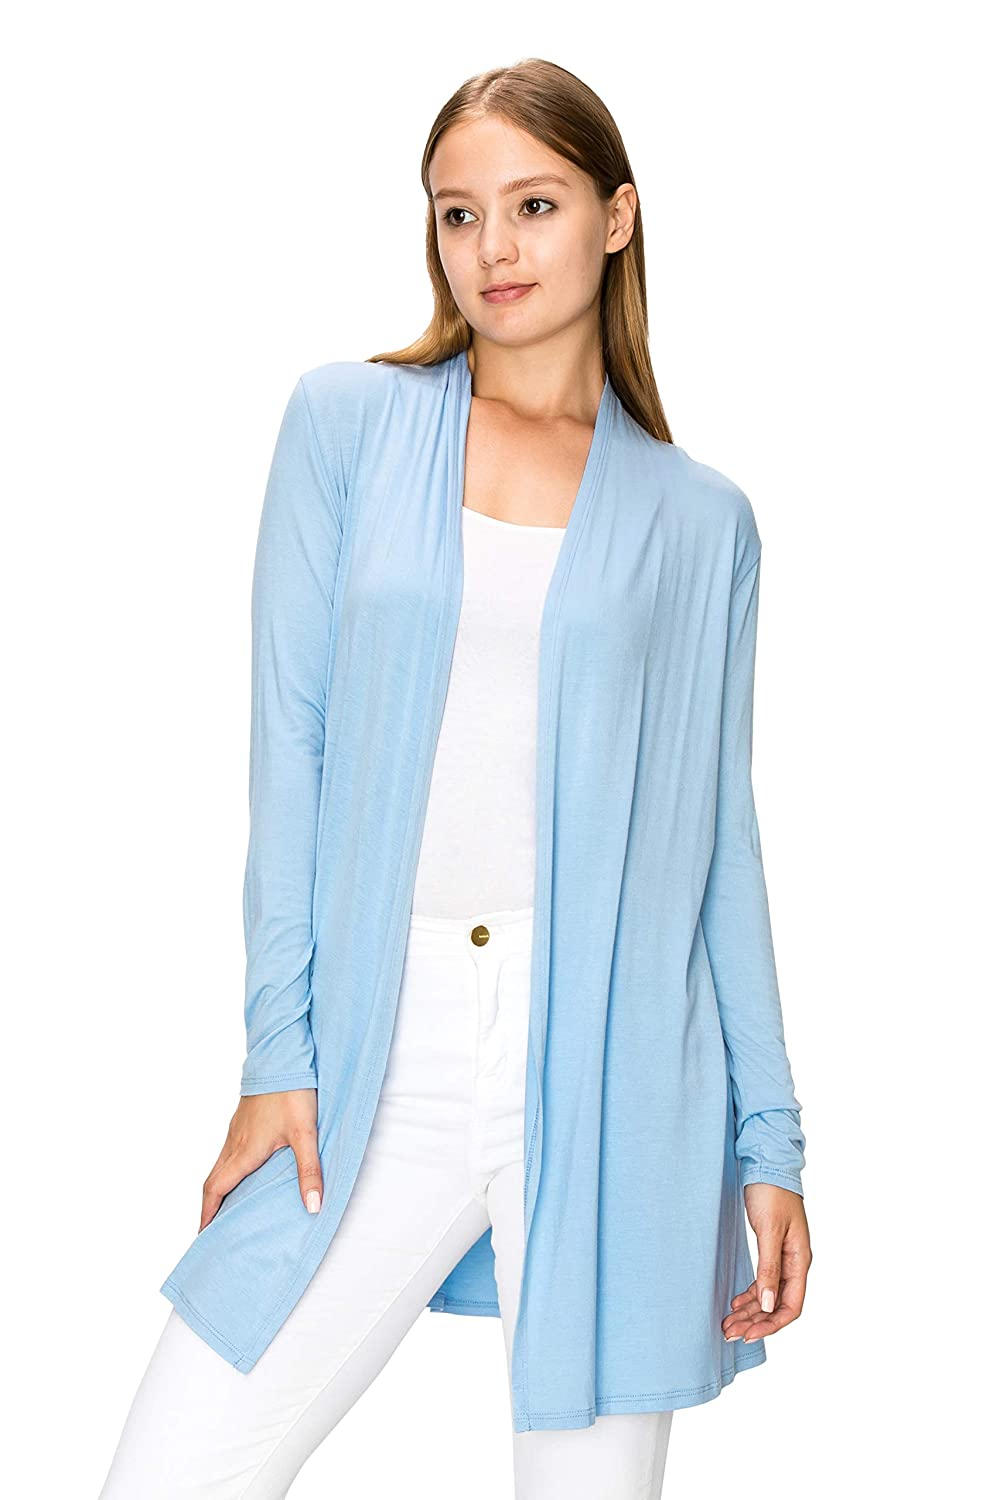 c9da78b616e FITS ANY SIZES  These fall and winter Long Lightweight Wrap Cardigans  Sweaters-EttelLut Open Front Regular Plus Size come in the sizes of S